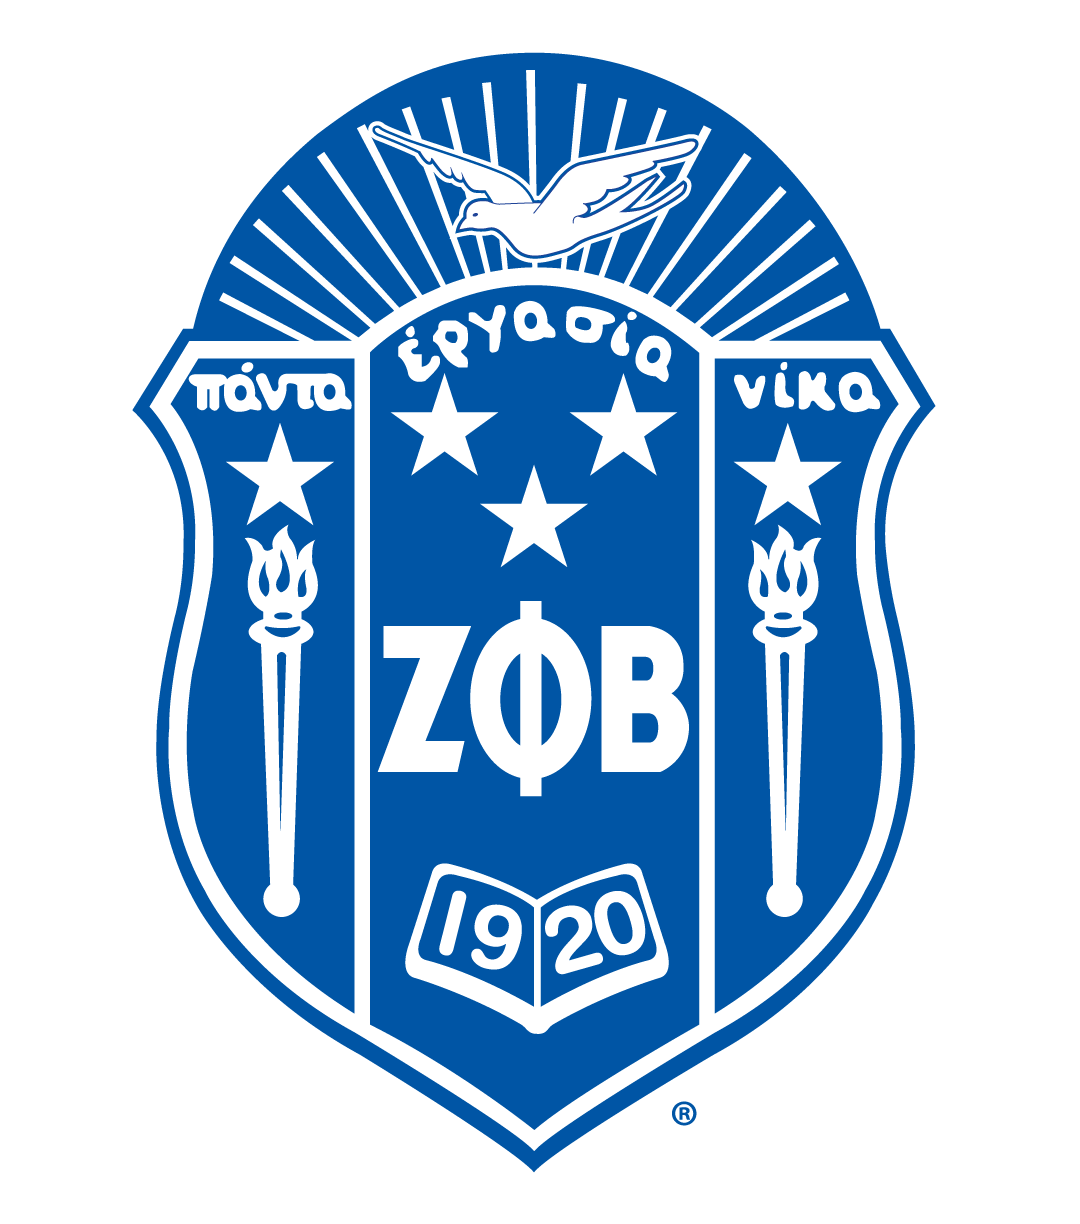 ZPHIB Atlantic Region